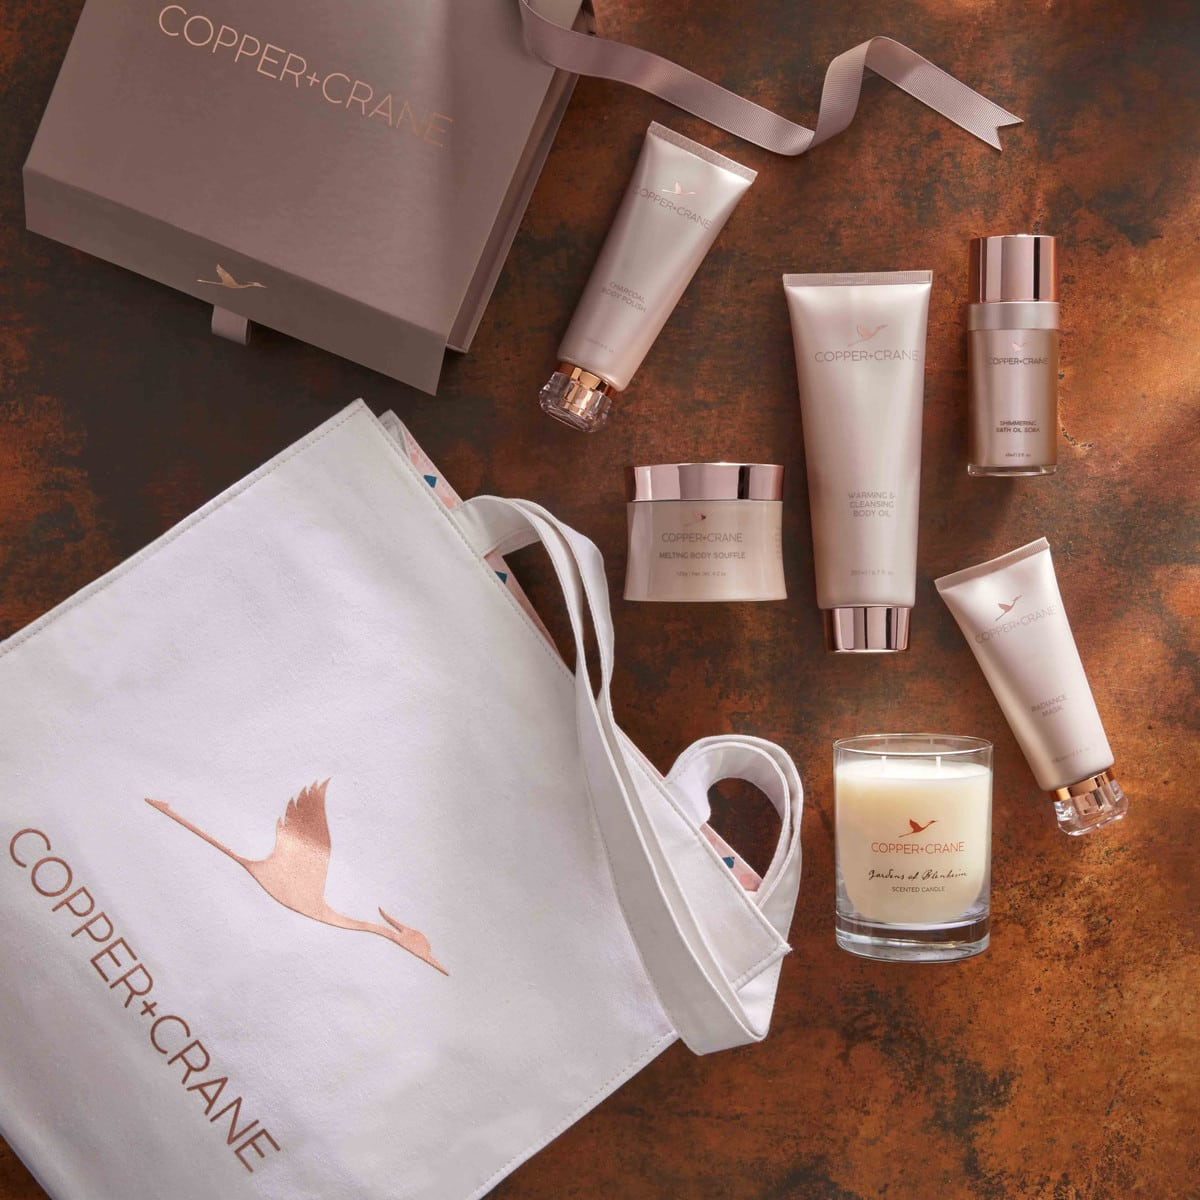 Copper and Crane Spa Collection Gift Set